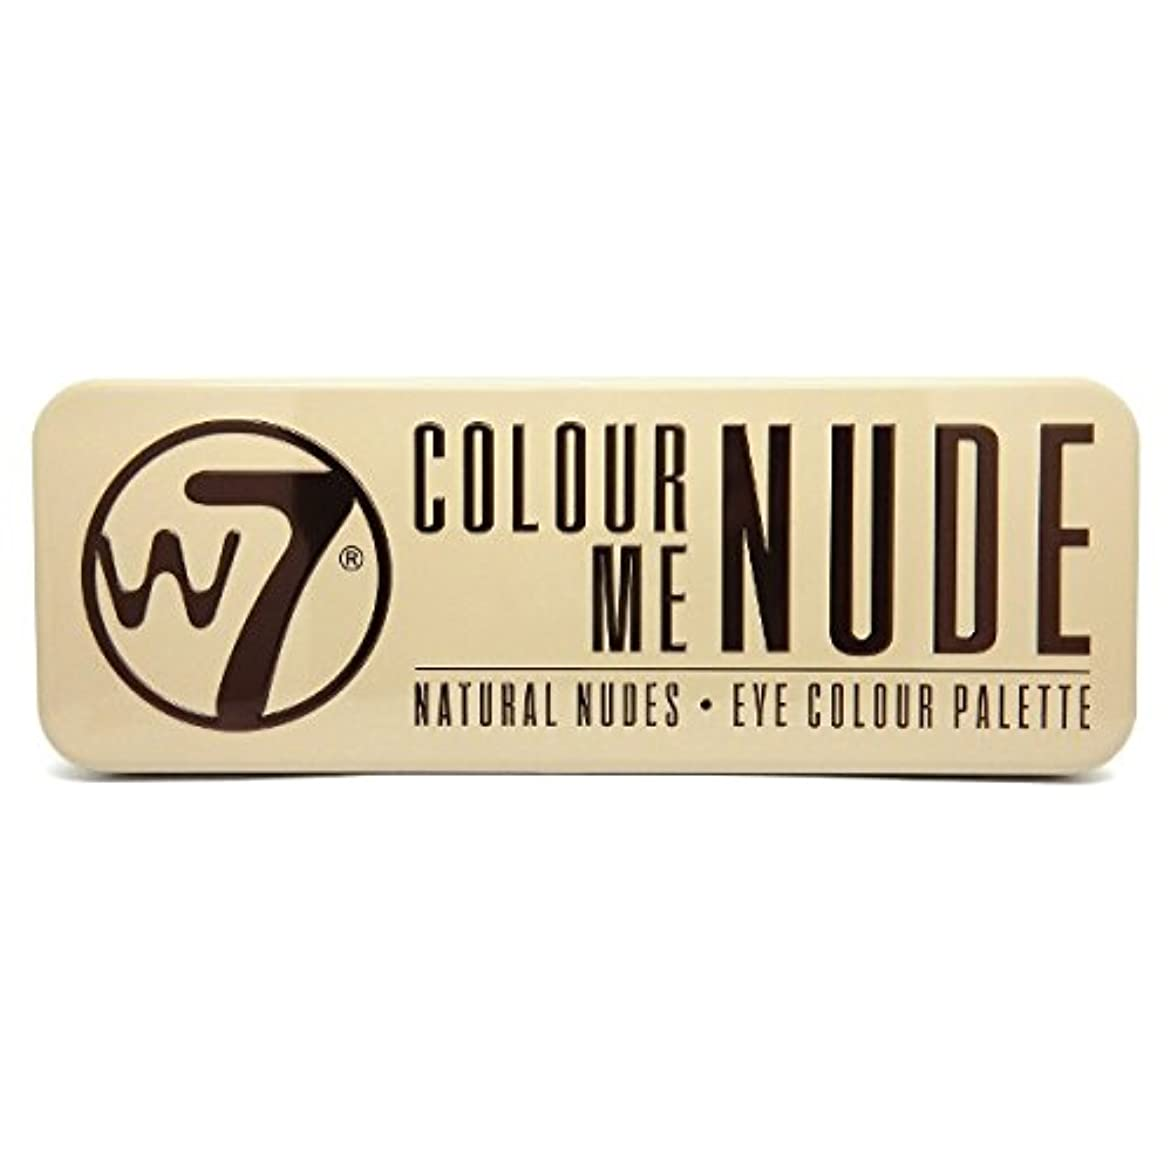 主張する反乱揮発性W7 Colour Me Nude Natural Nudes Eye Colour Palette (並行輸入品)